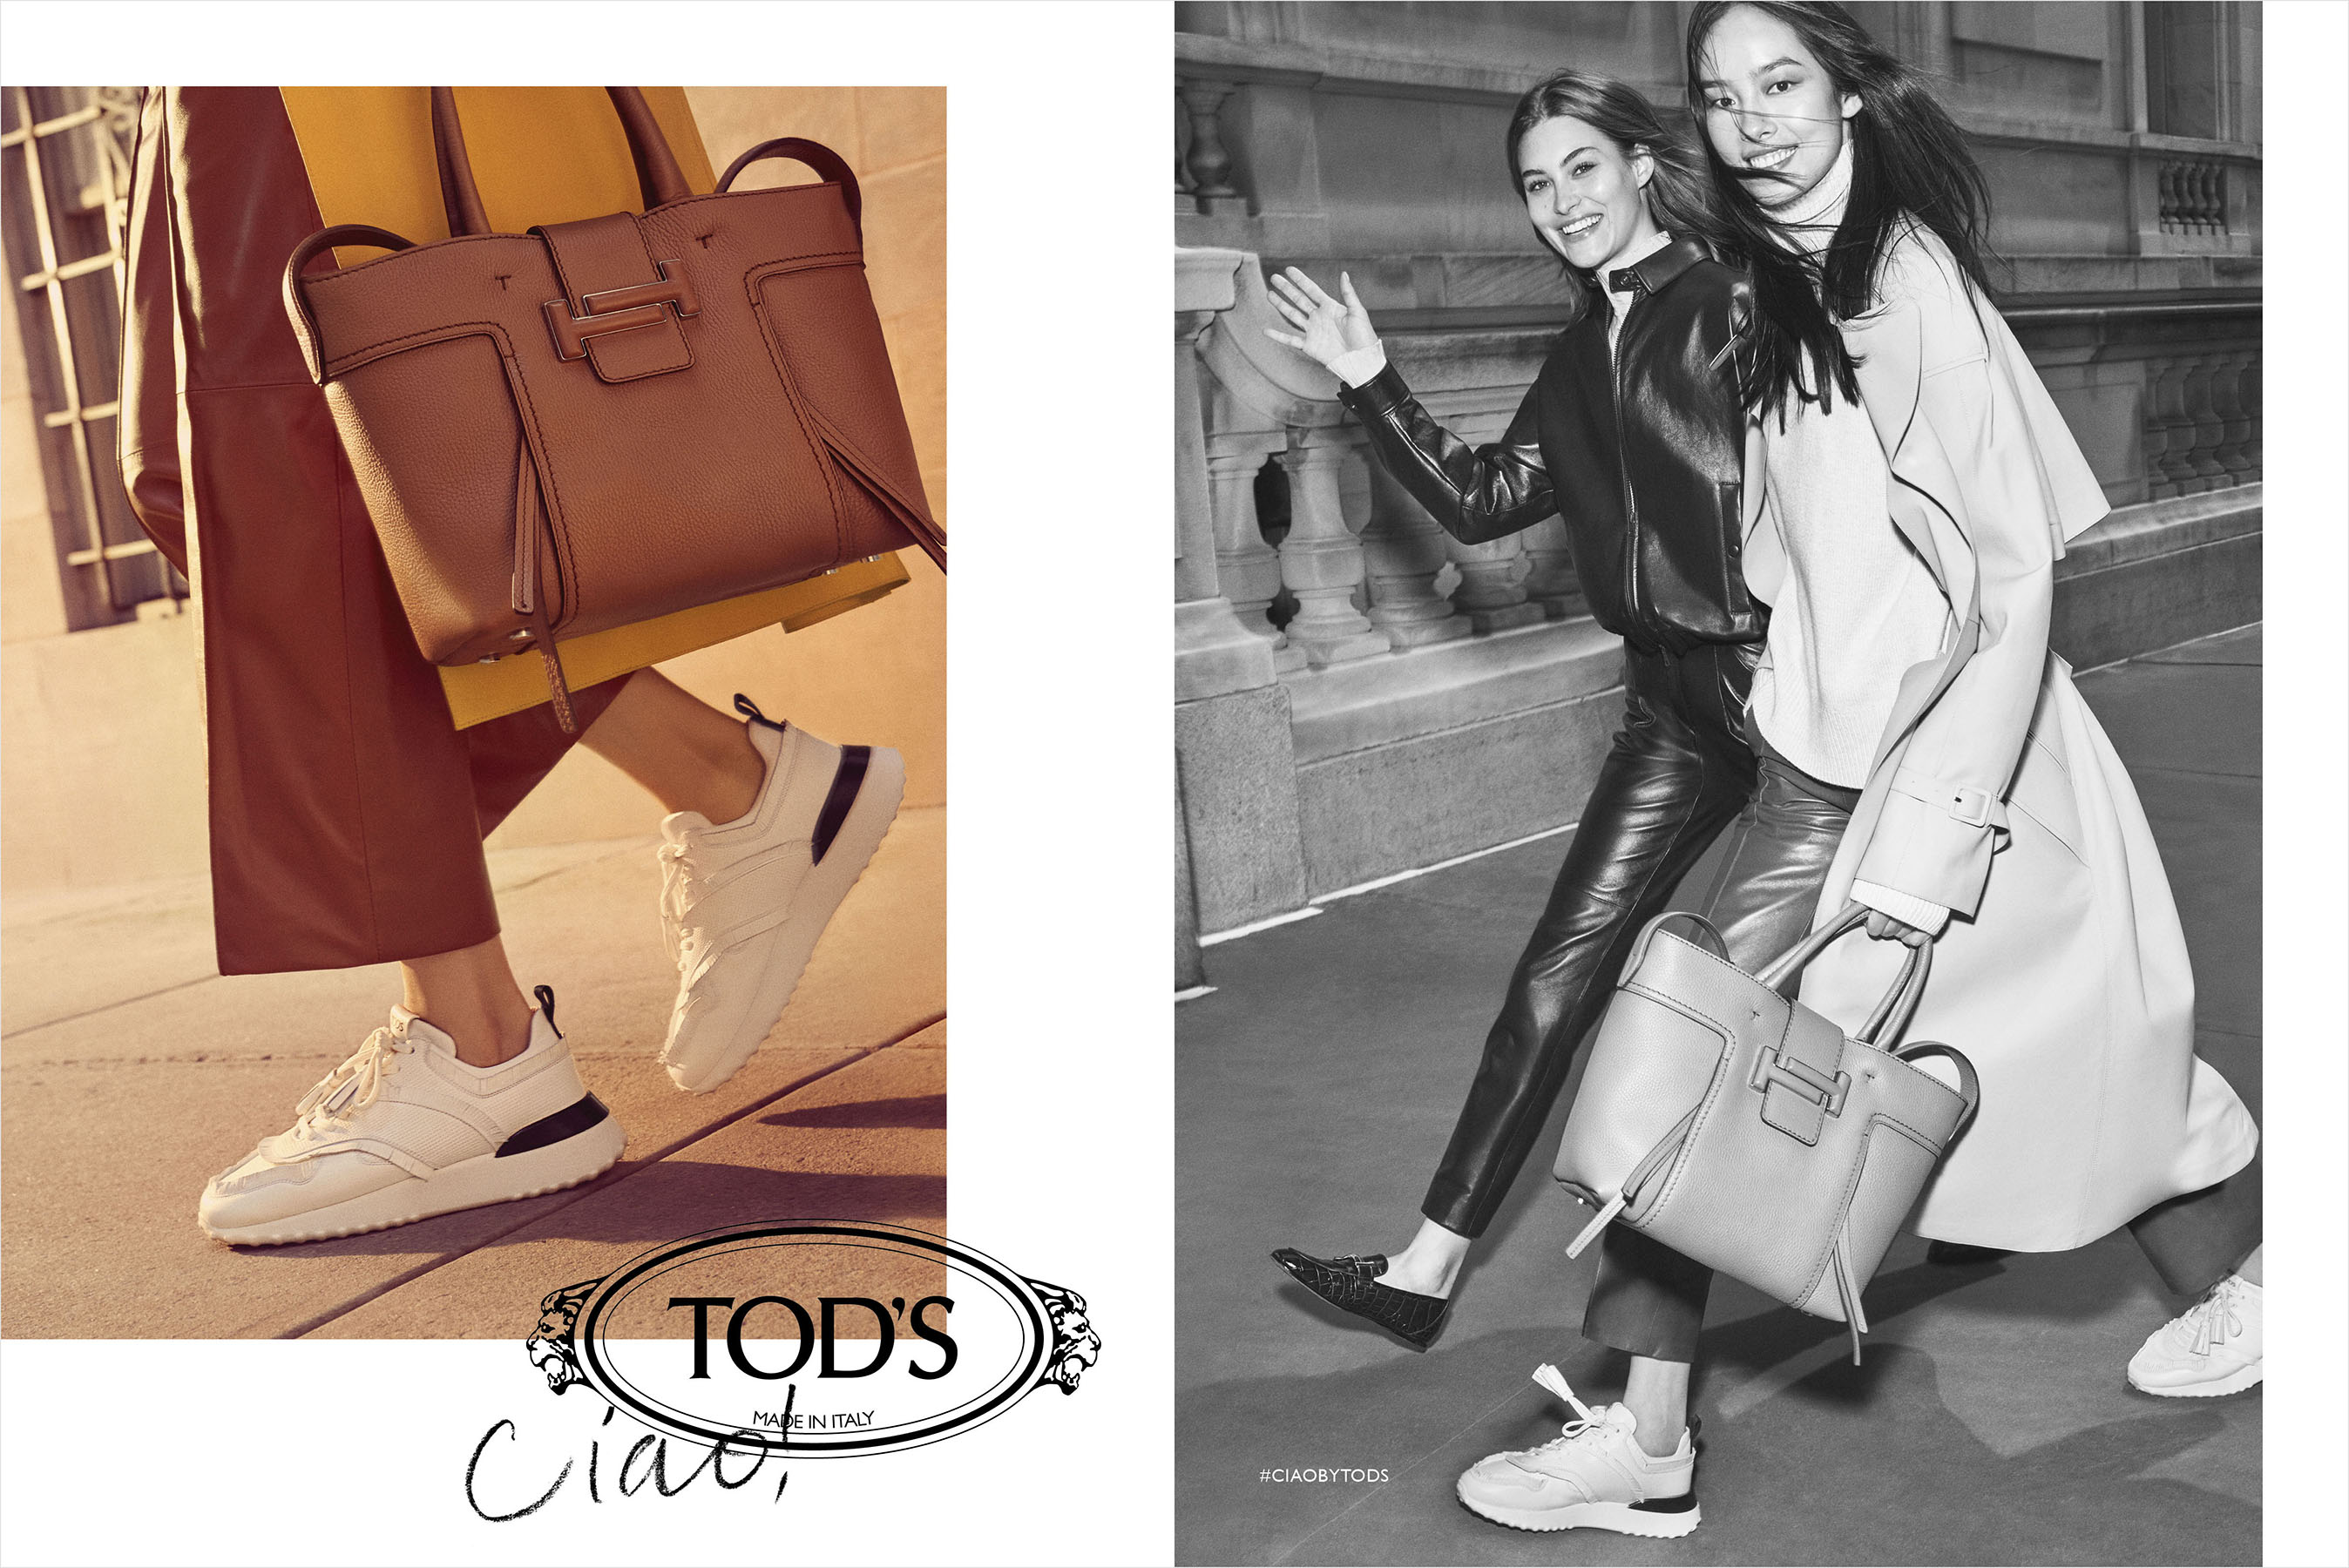 Tod's Fall 2018 Ad Campaign by Craig McDean